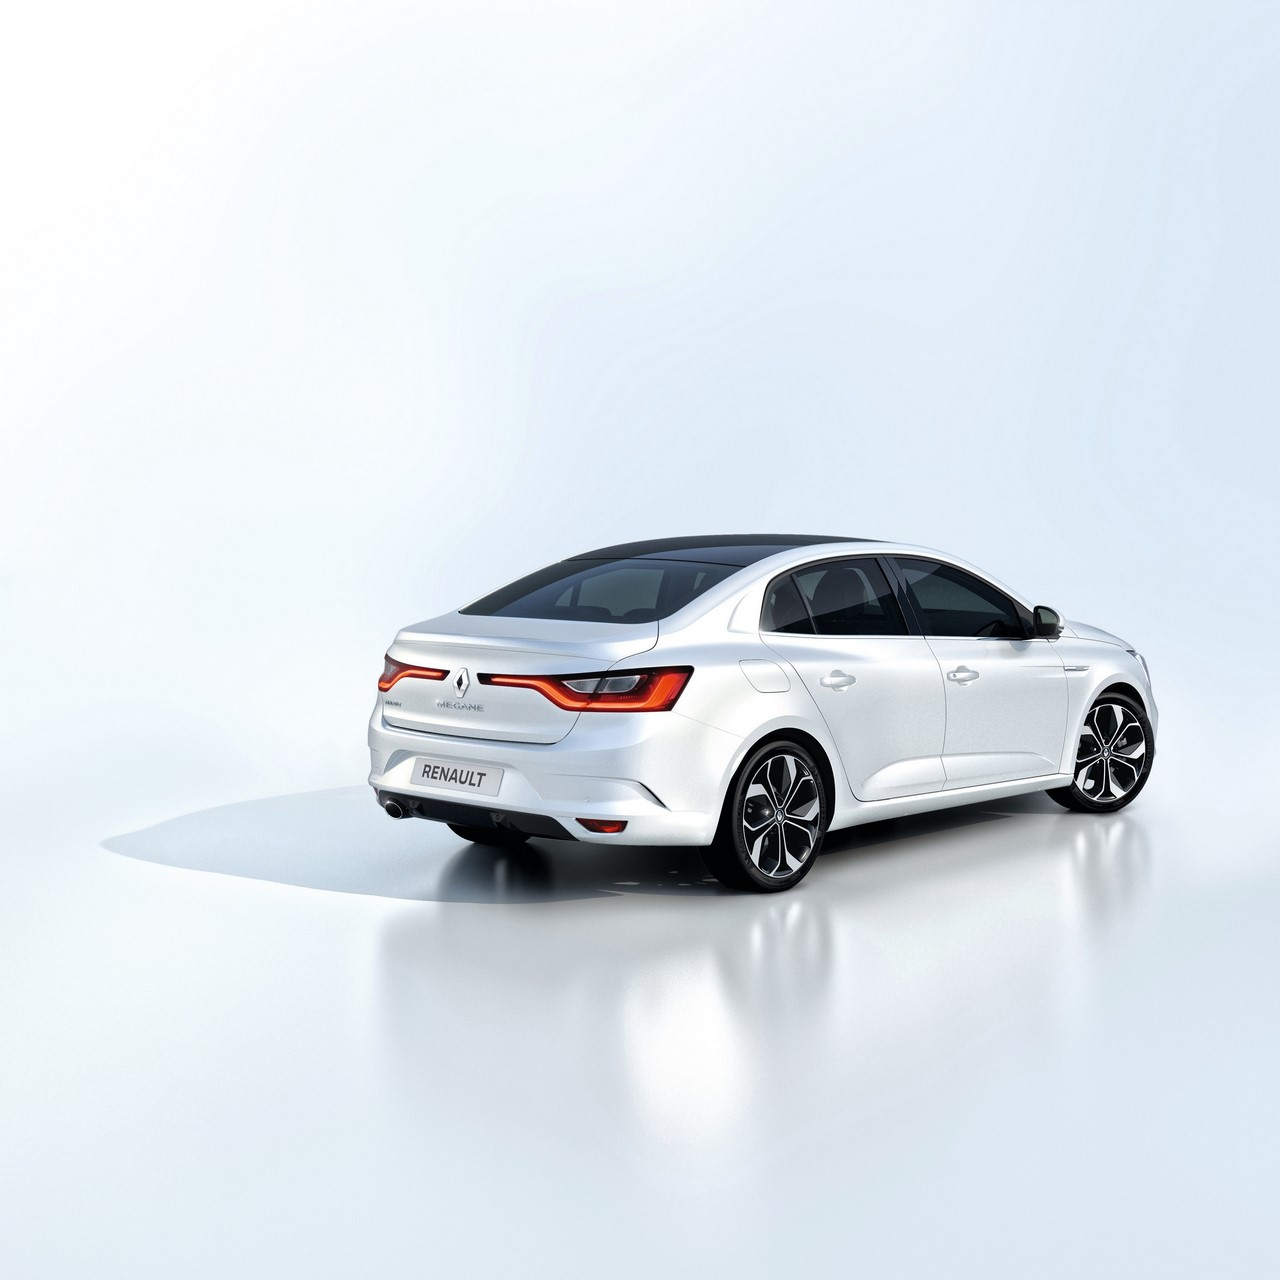 2016 Renault Megane Sedan rear three quarters right side studio image